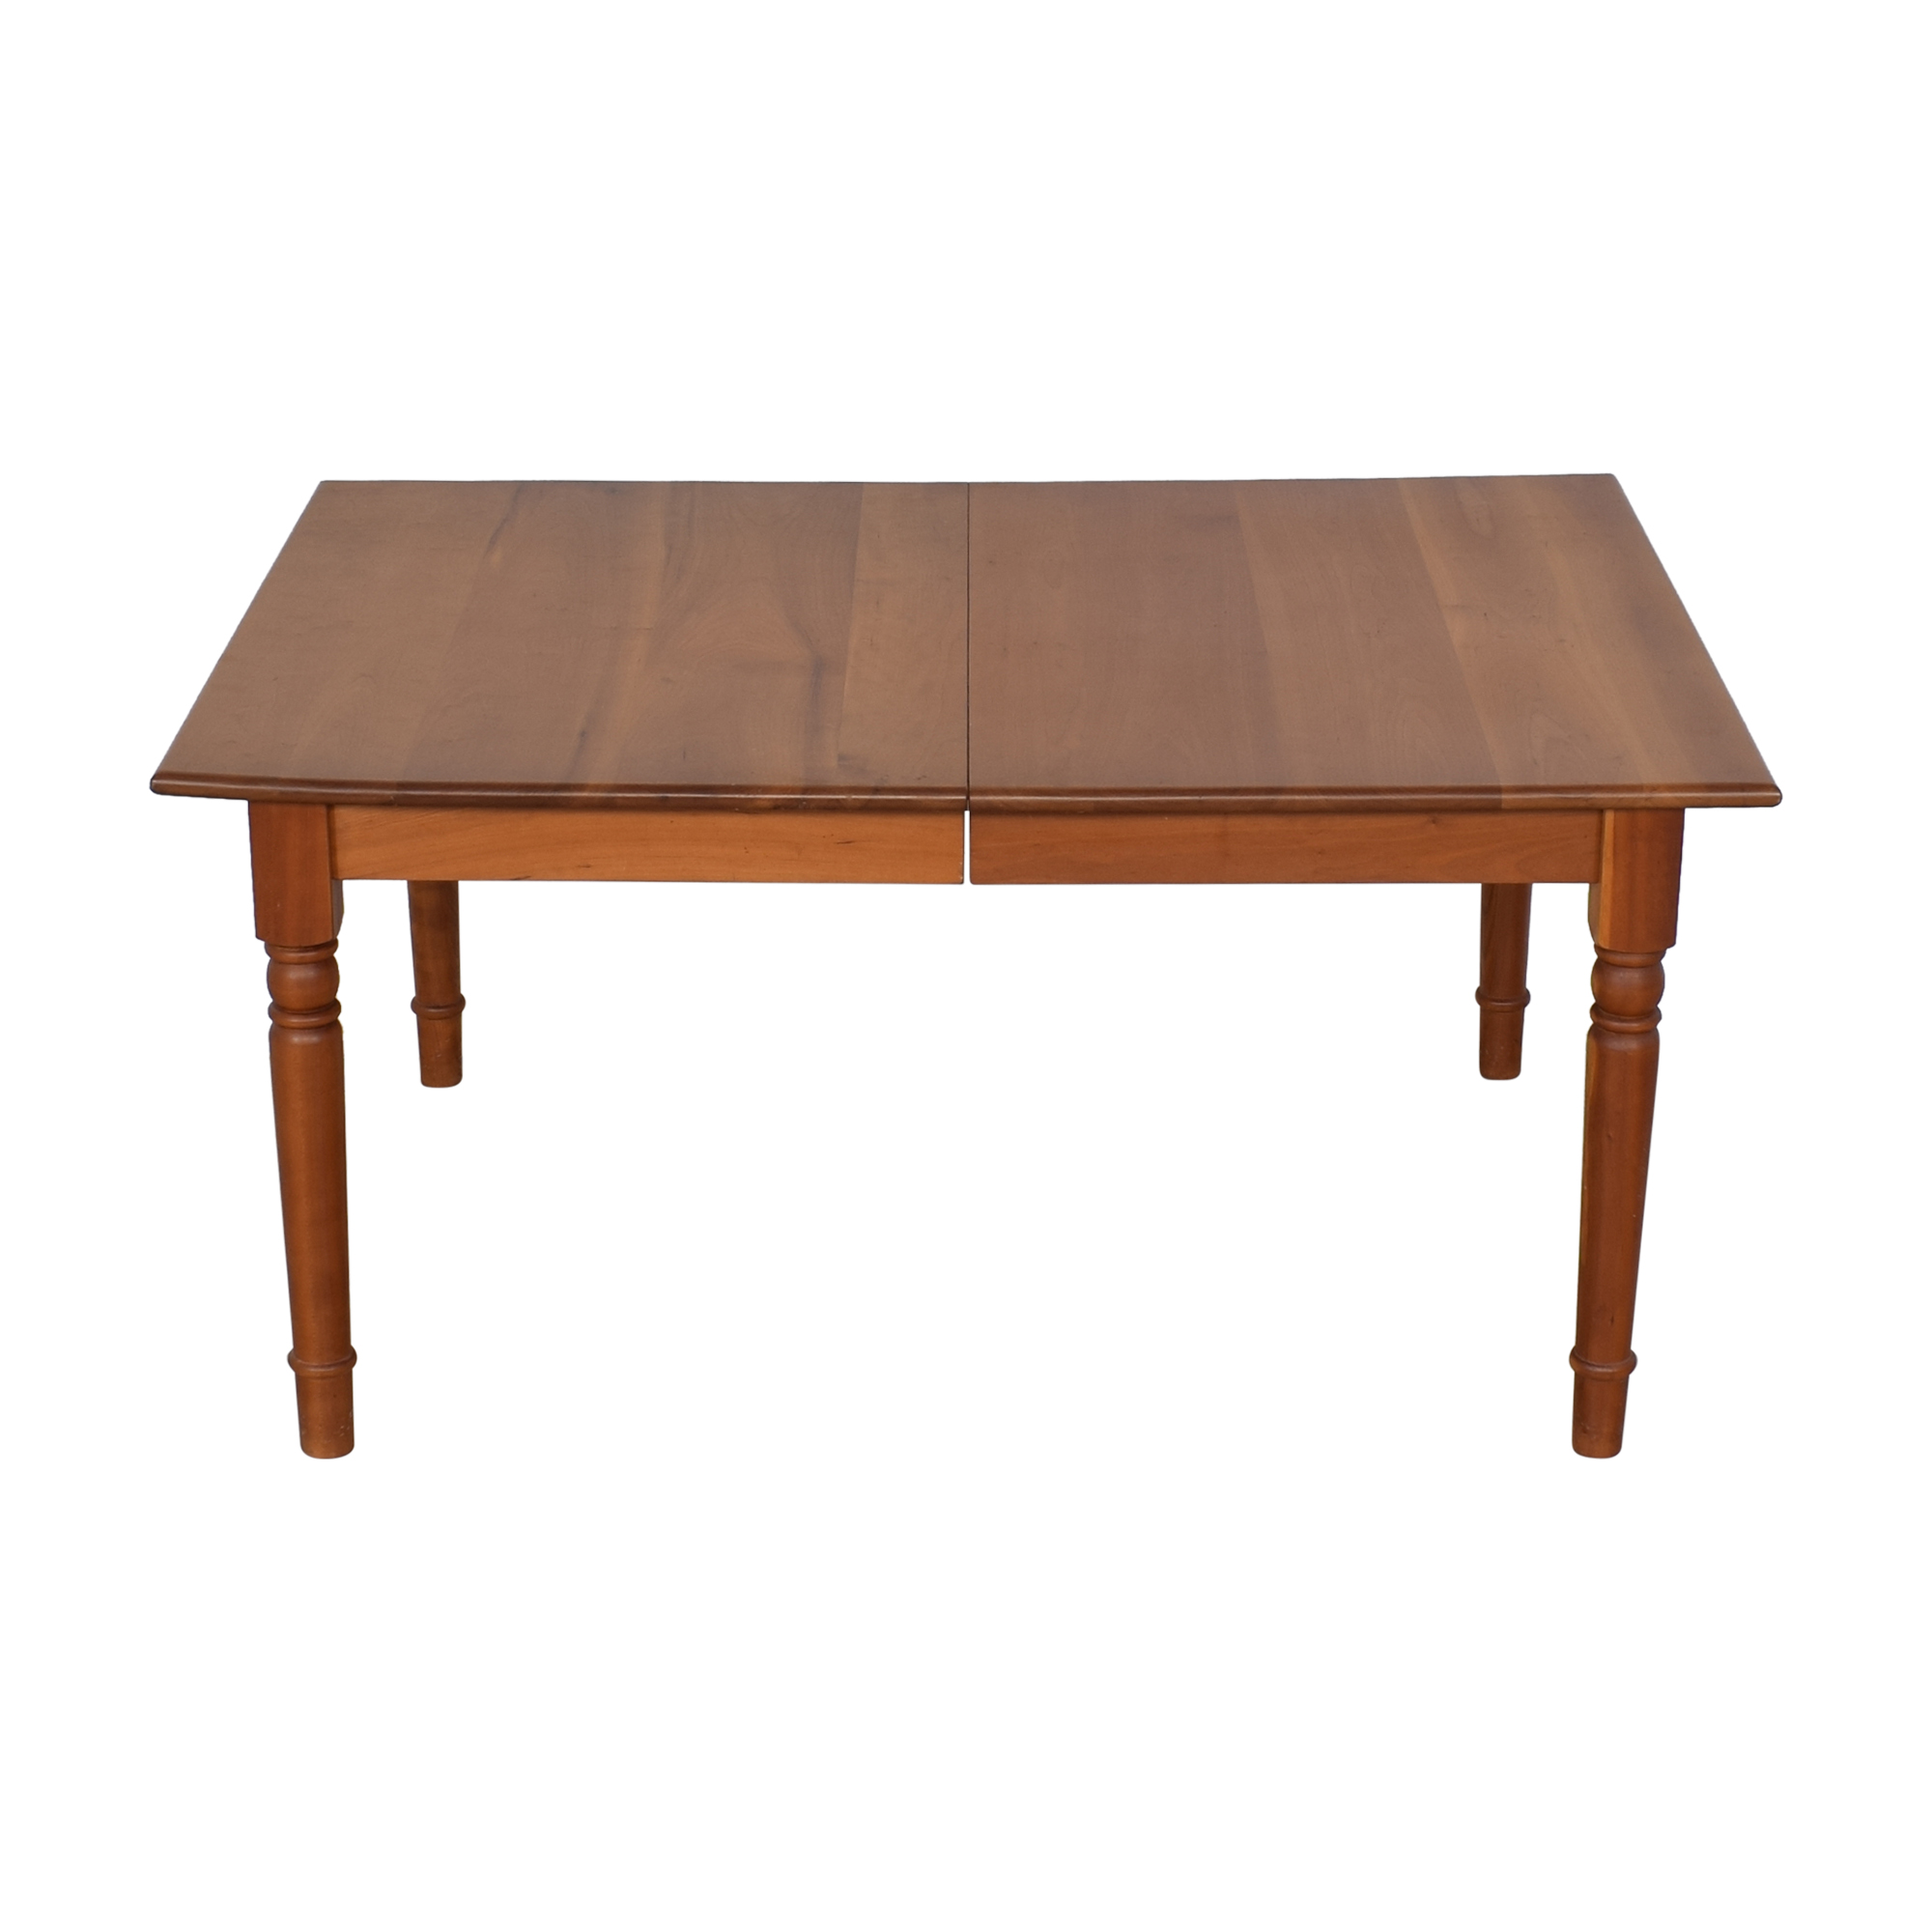 Asher Benjamin Studio Asher Benjamin Studio Extended Dining Table